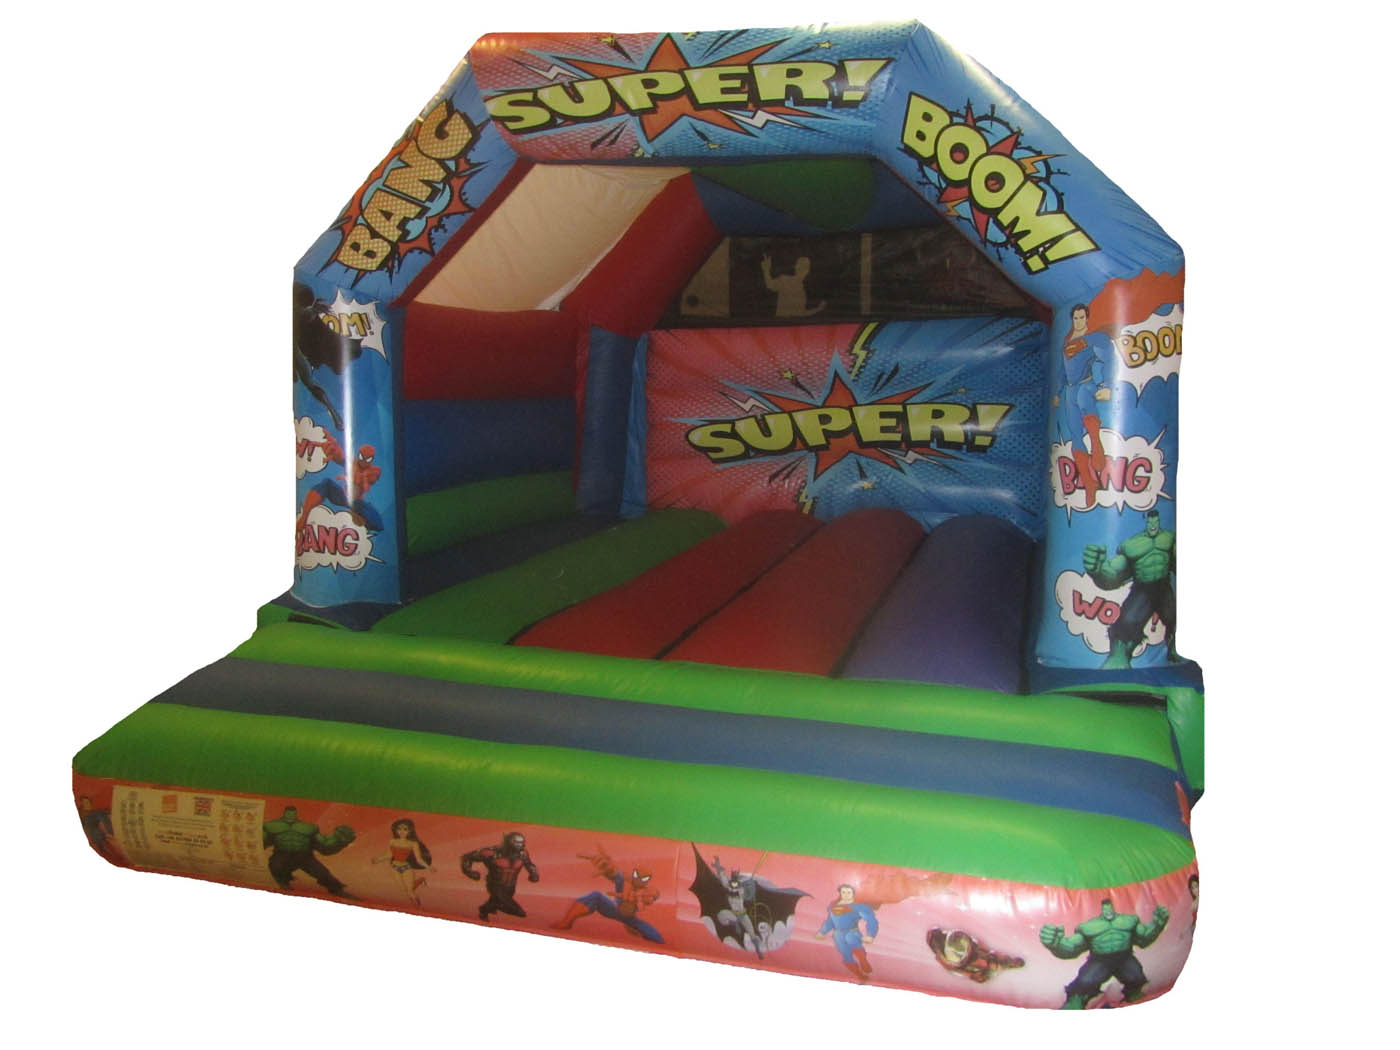 Childrens Commercial Bouncy Castle with Superhero Artwork